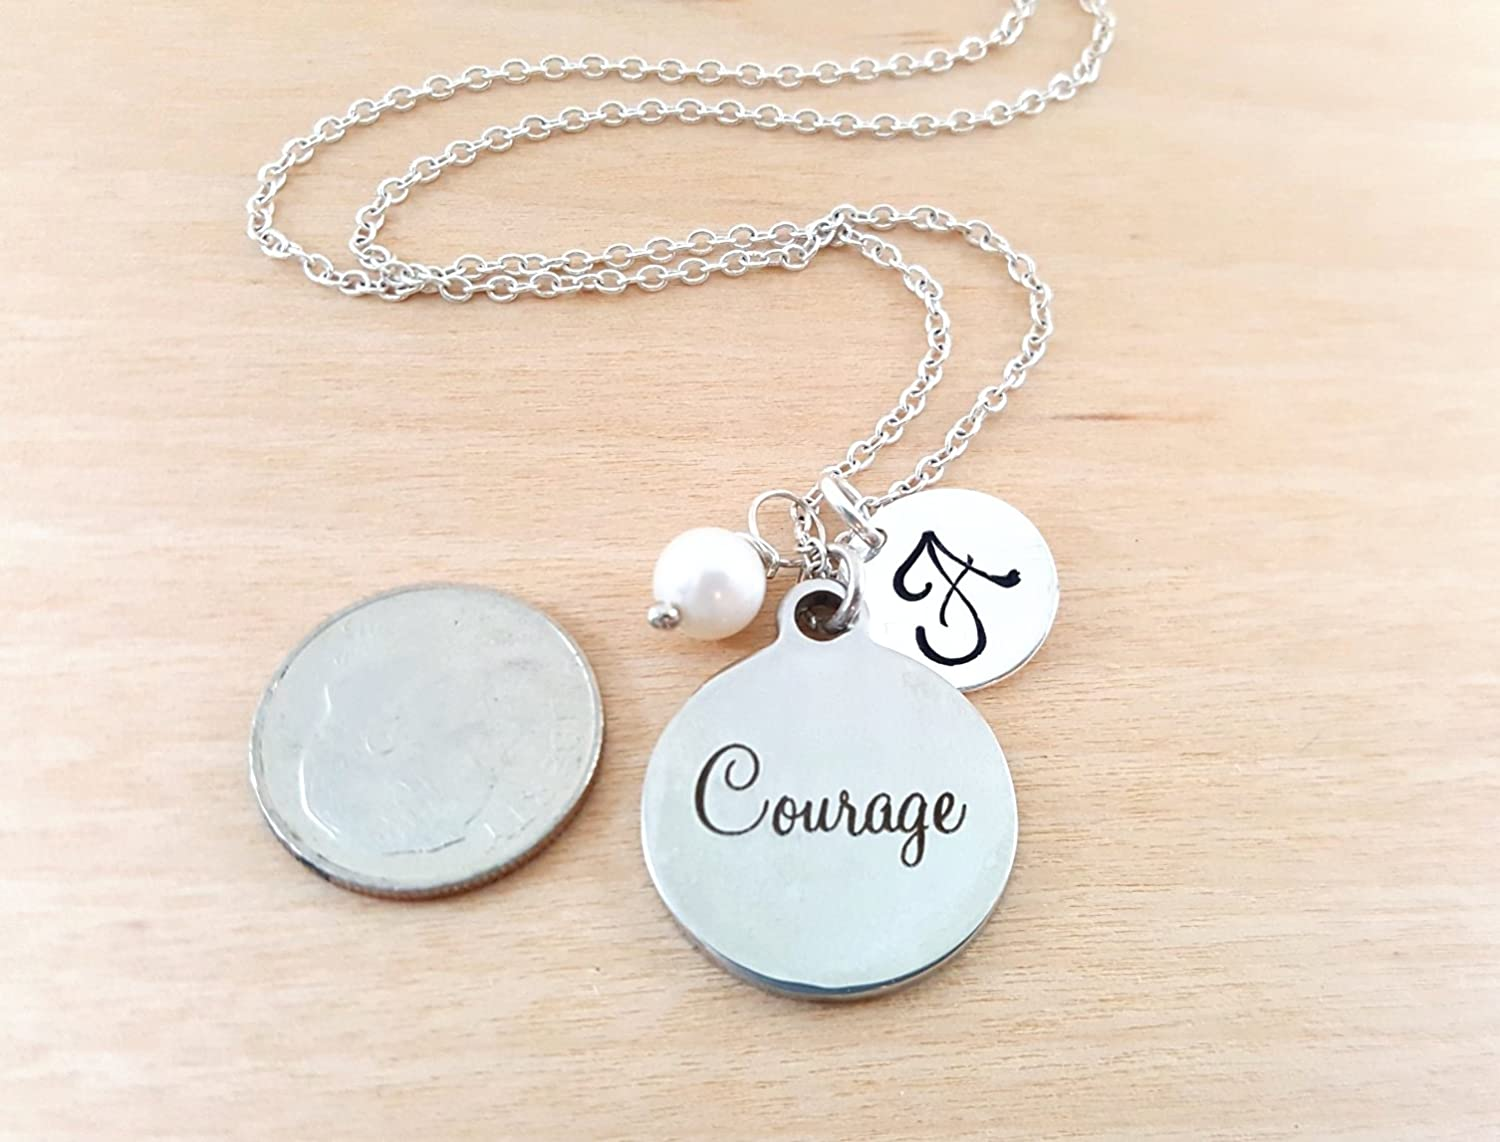 jewelry wax westmeyer products necklace courage shannon seal and resize loyalty greyhound crest